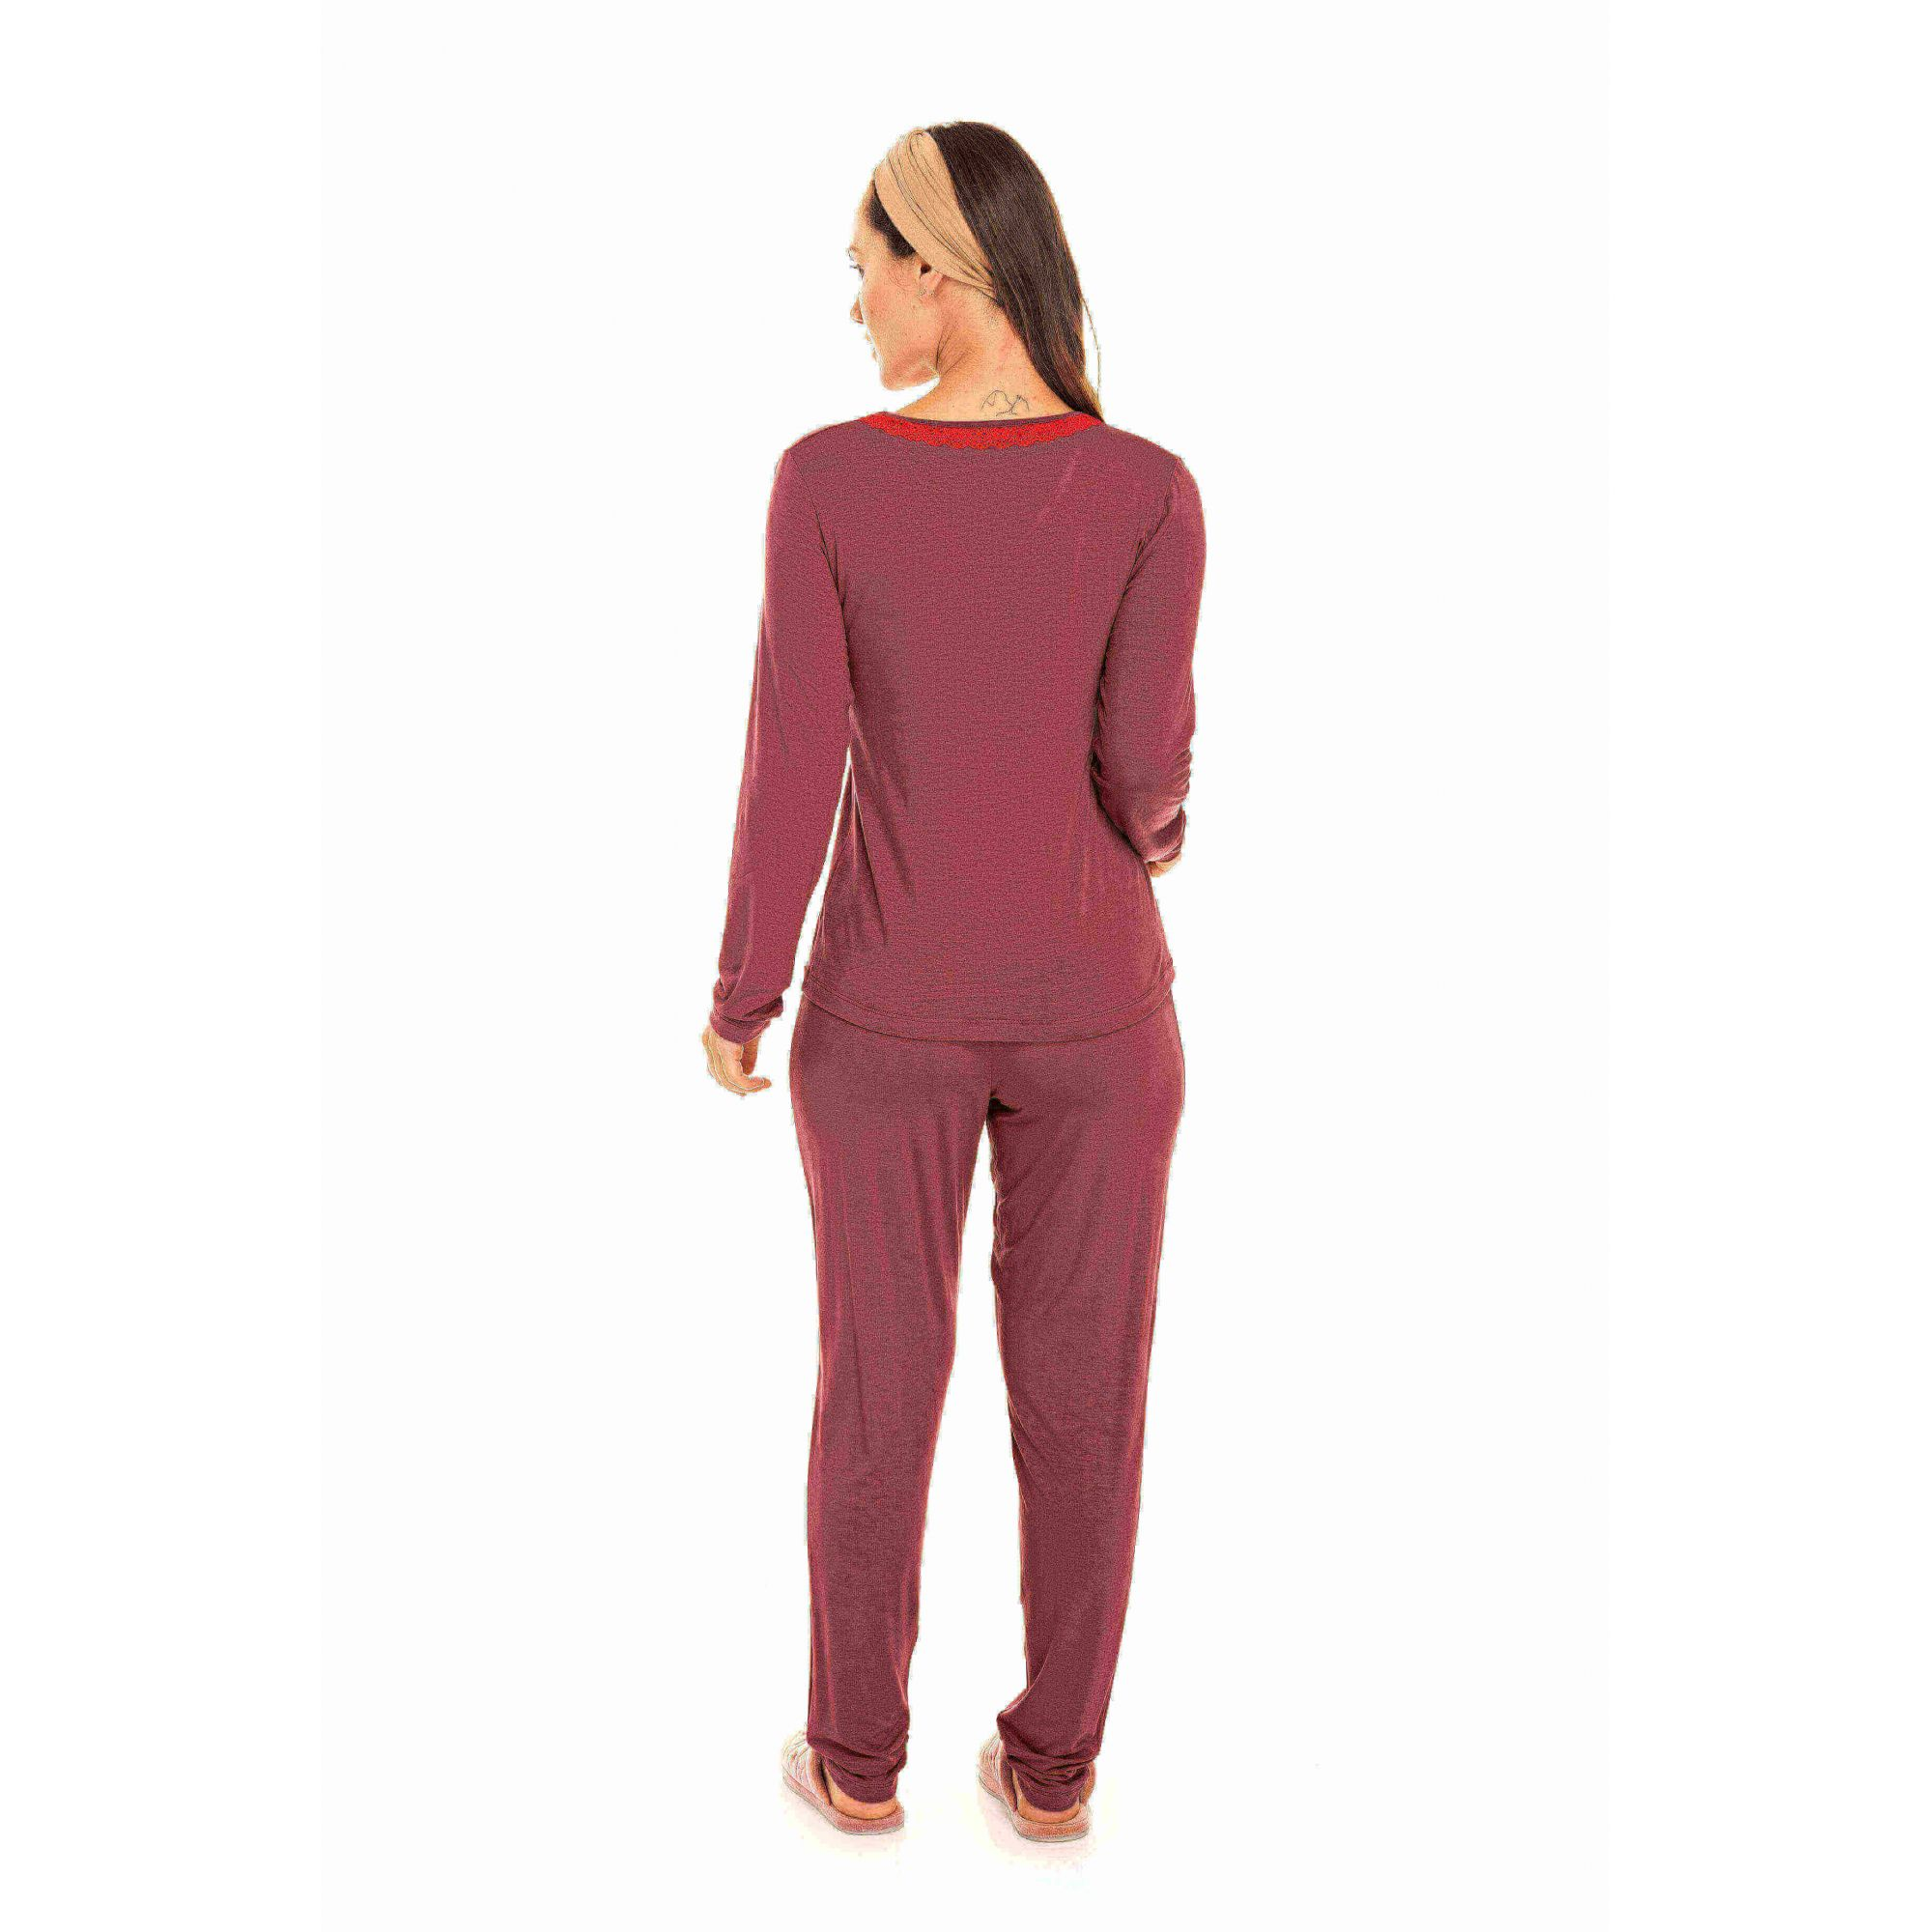 Pijama Adulto Feminino Viscolycra Bordô